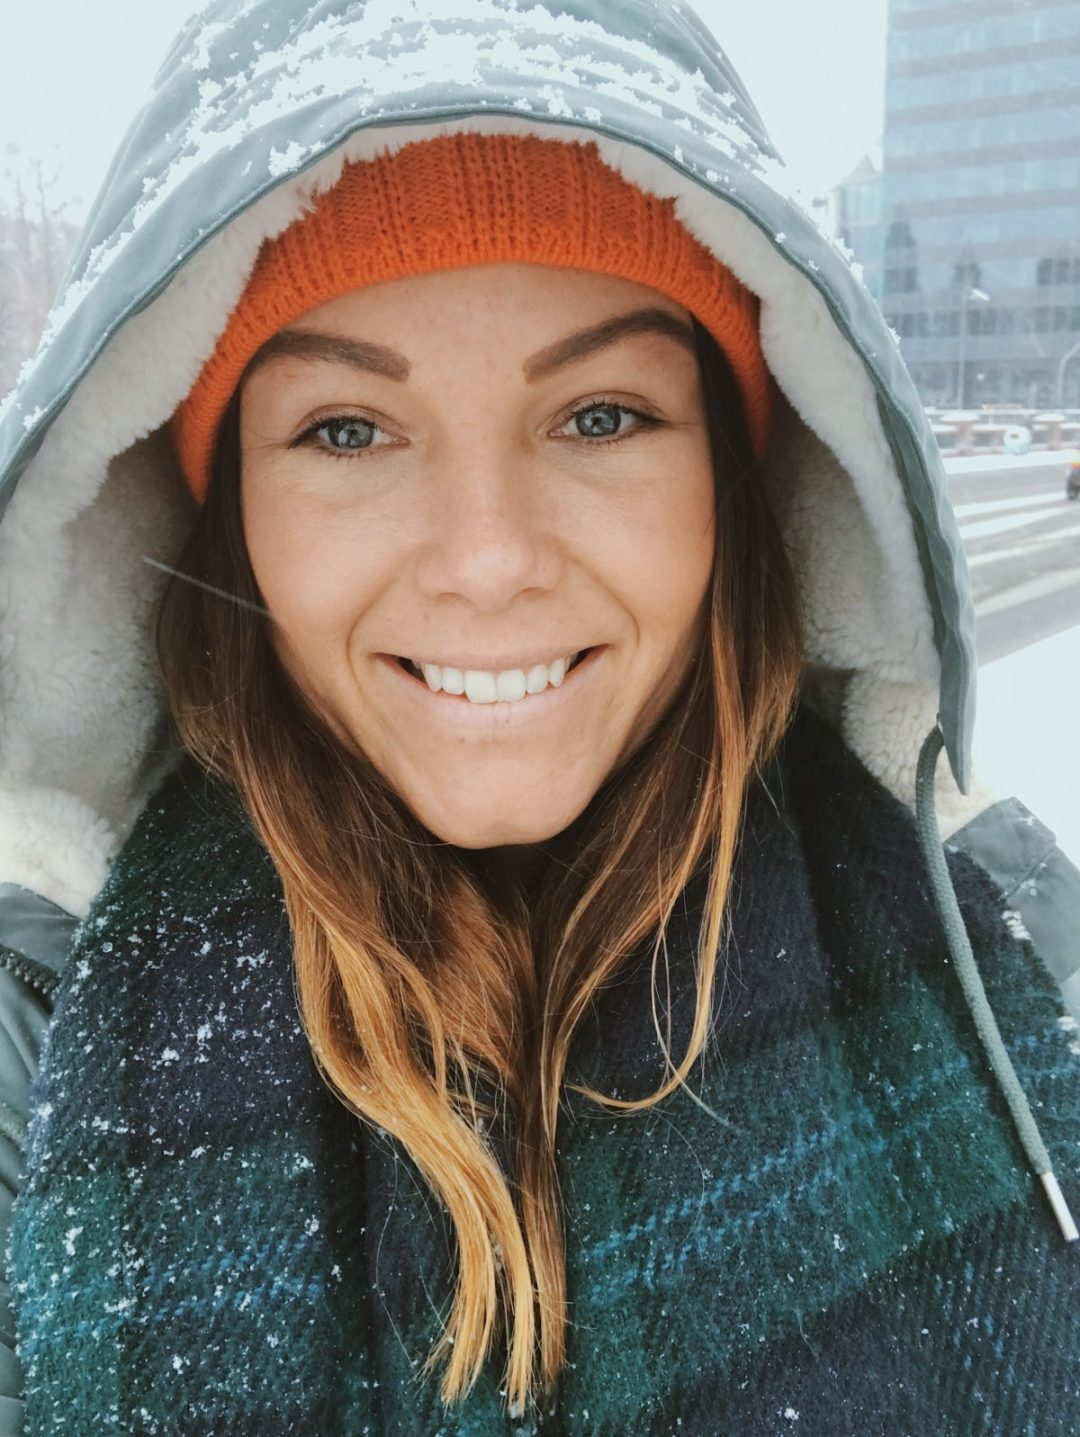 A girl smiling in the snow, wearing outdoor gear